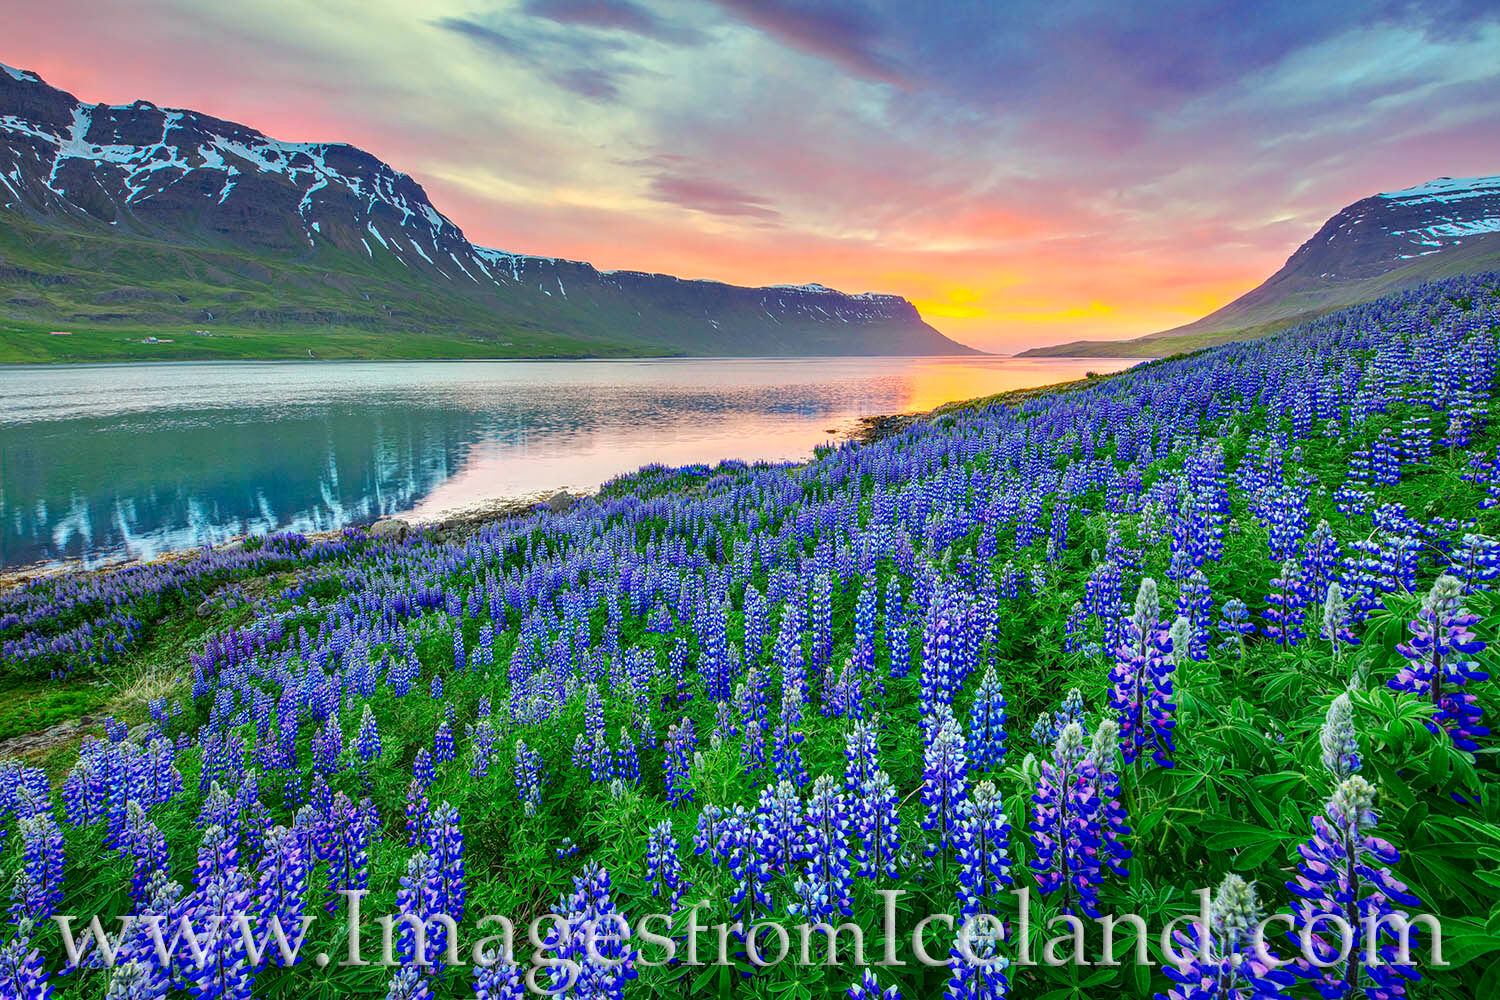 Lupine fill the slopes leading to the water near Seydisfjördur, Iceland just after midnight on a calm summer evening. The lingering...